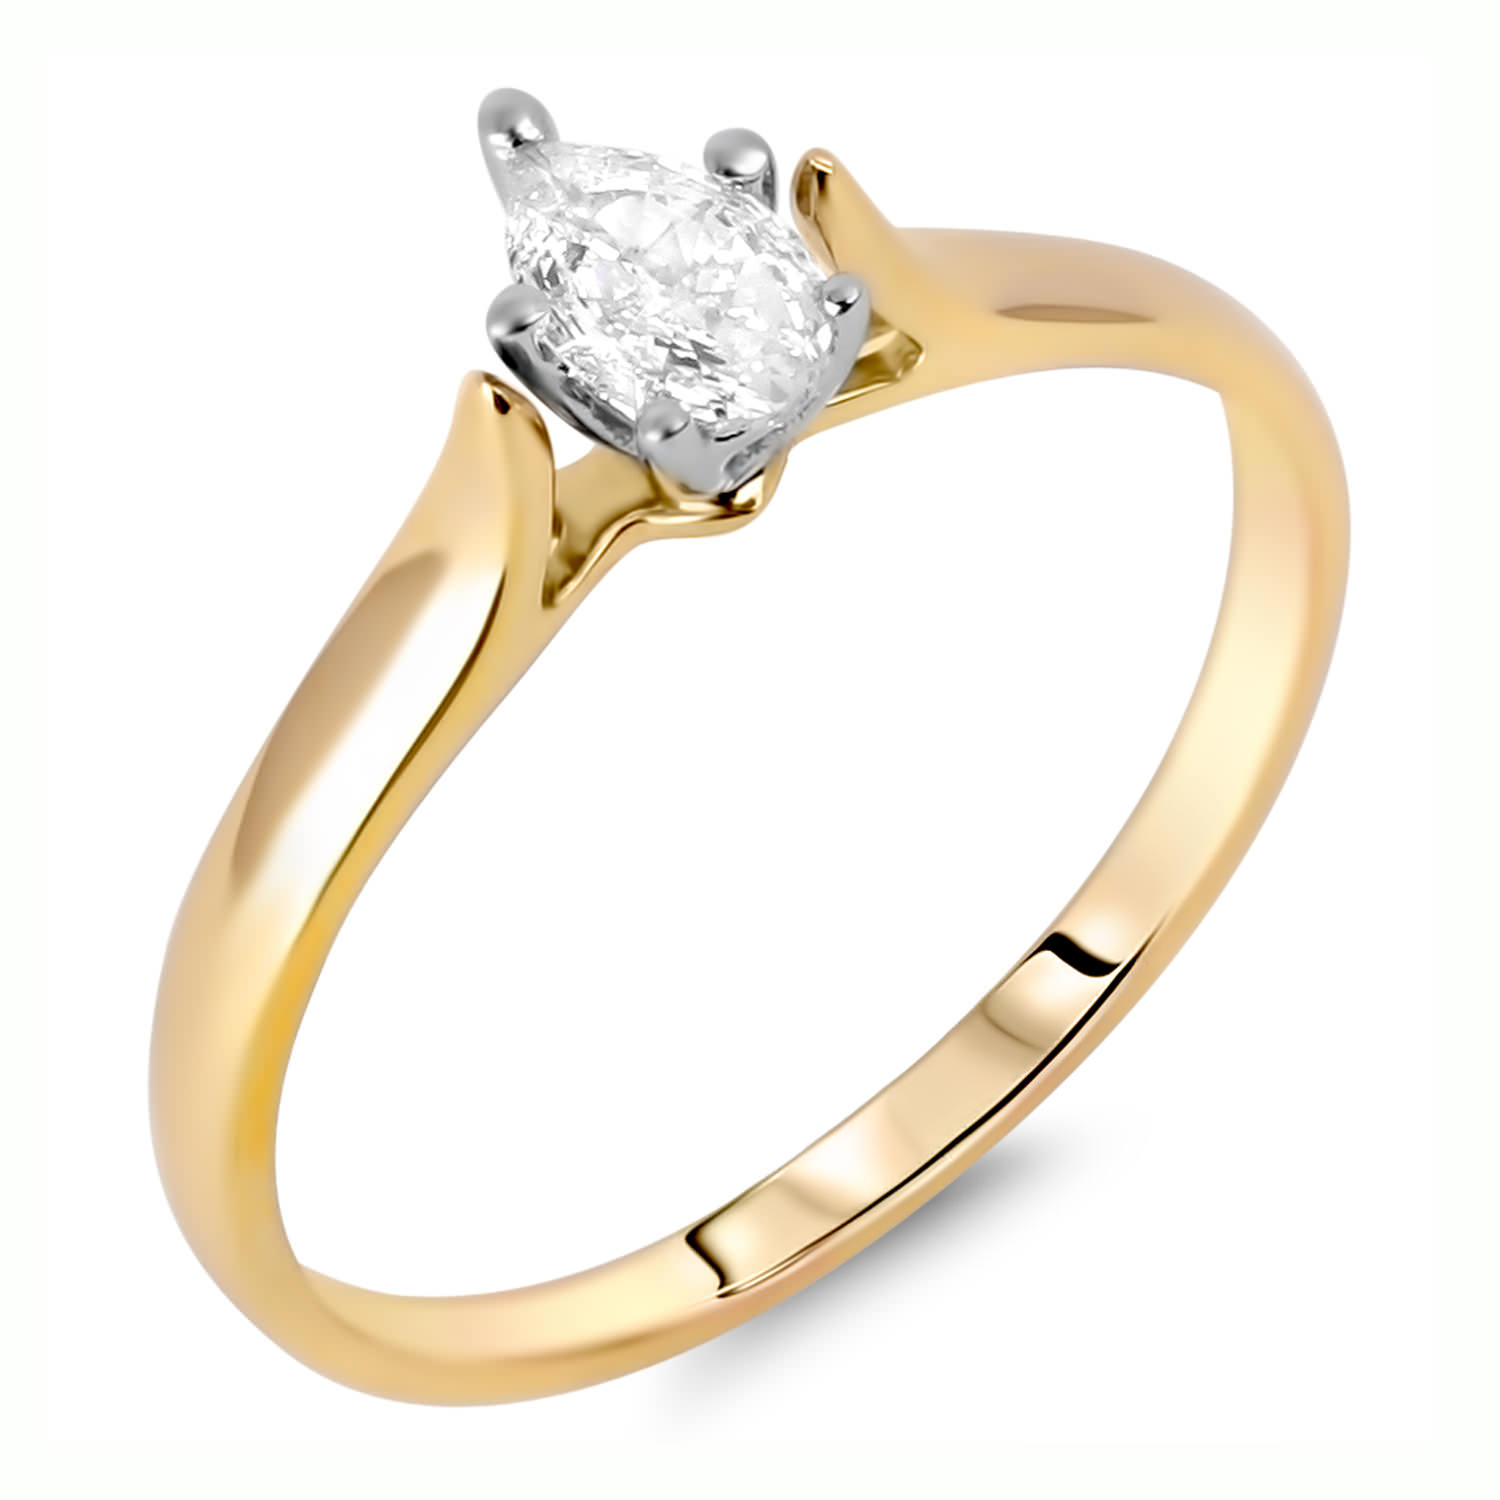 Diamond Solitaire Rings SEC2109 (Rings)